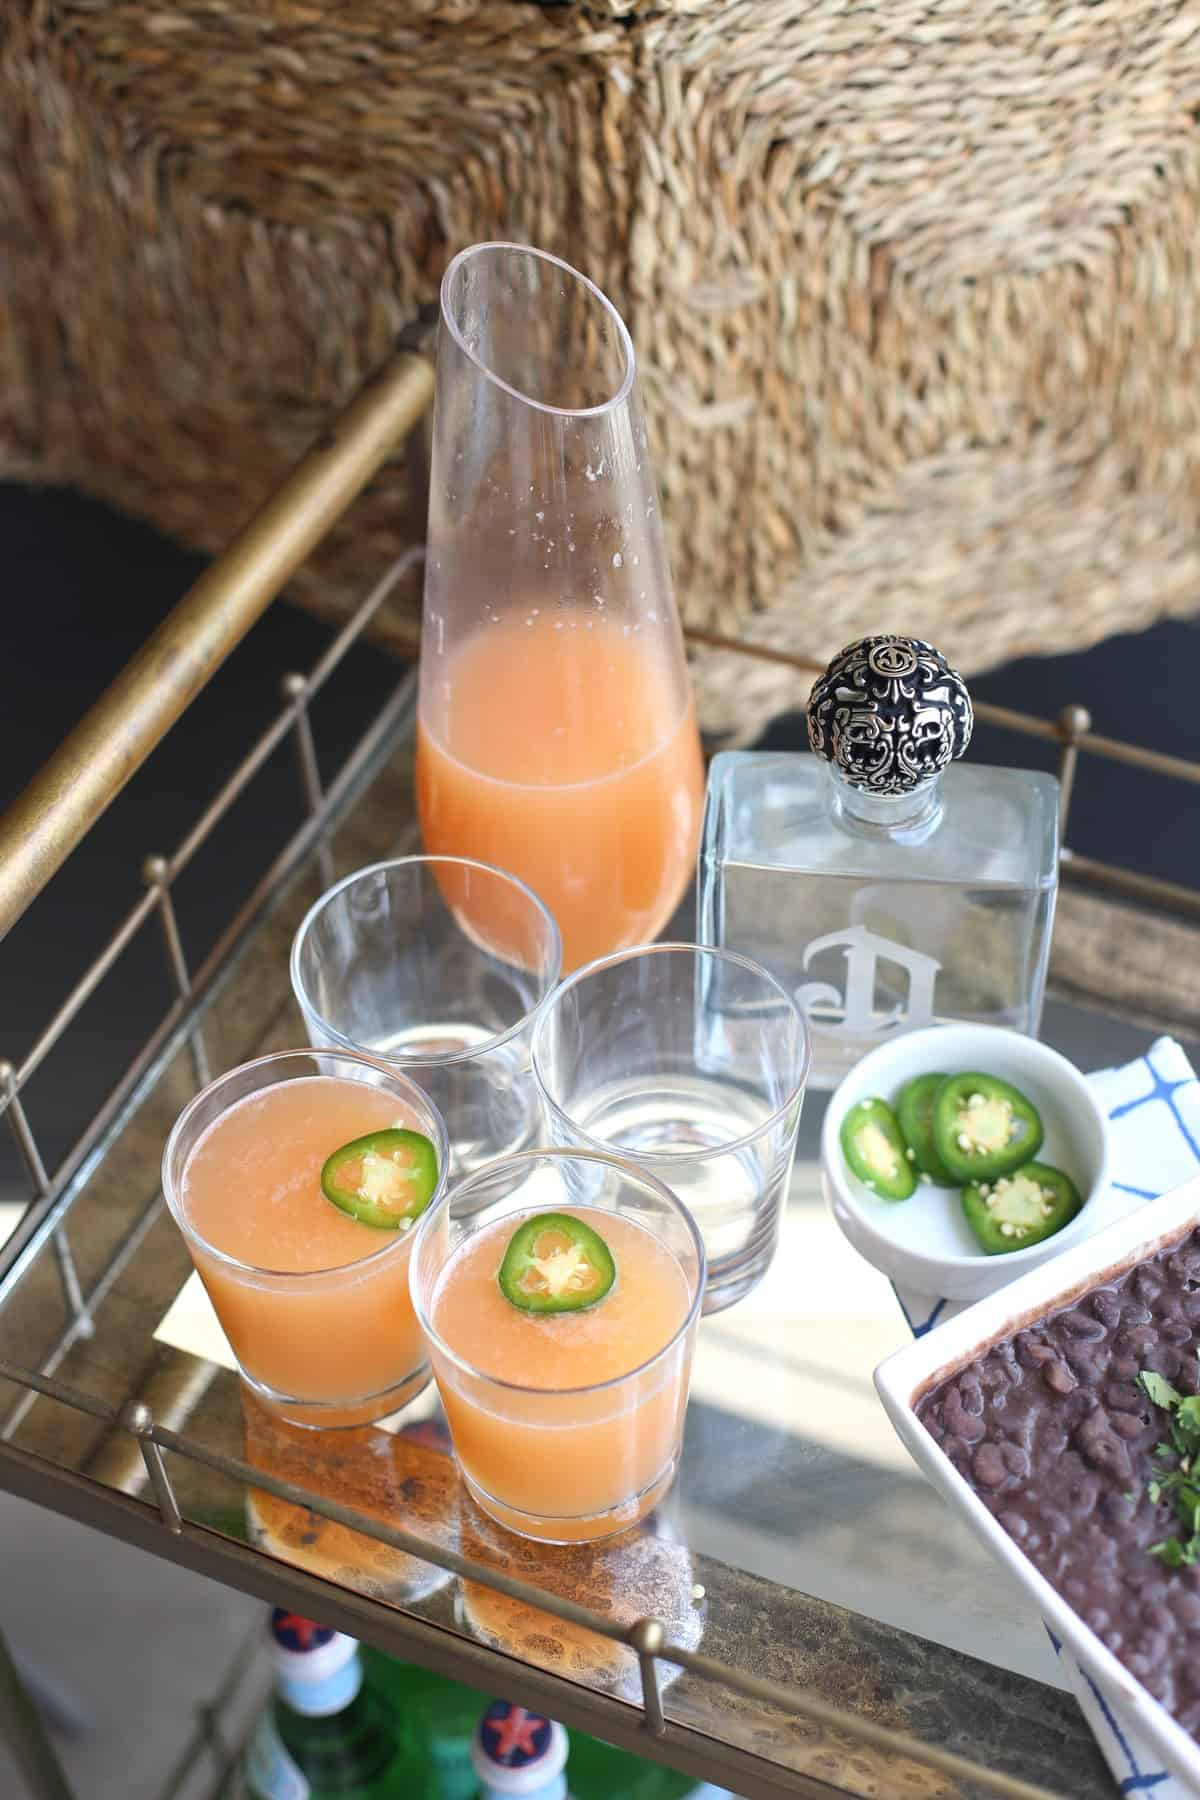 spicy paloma recipe via @mystylevita - 1